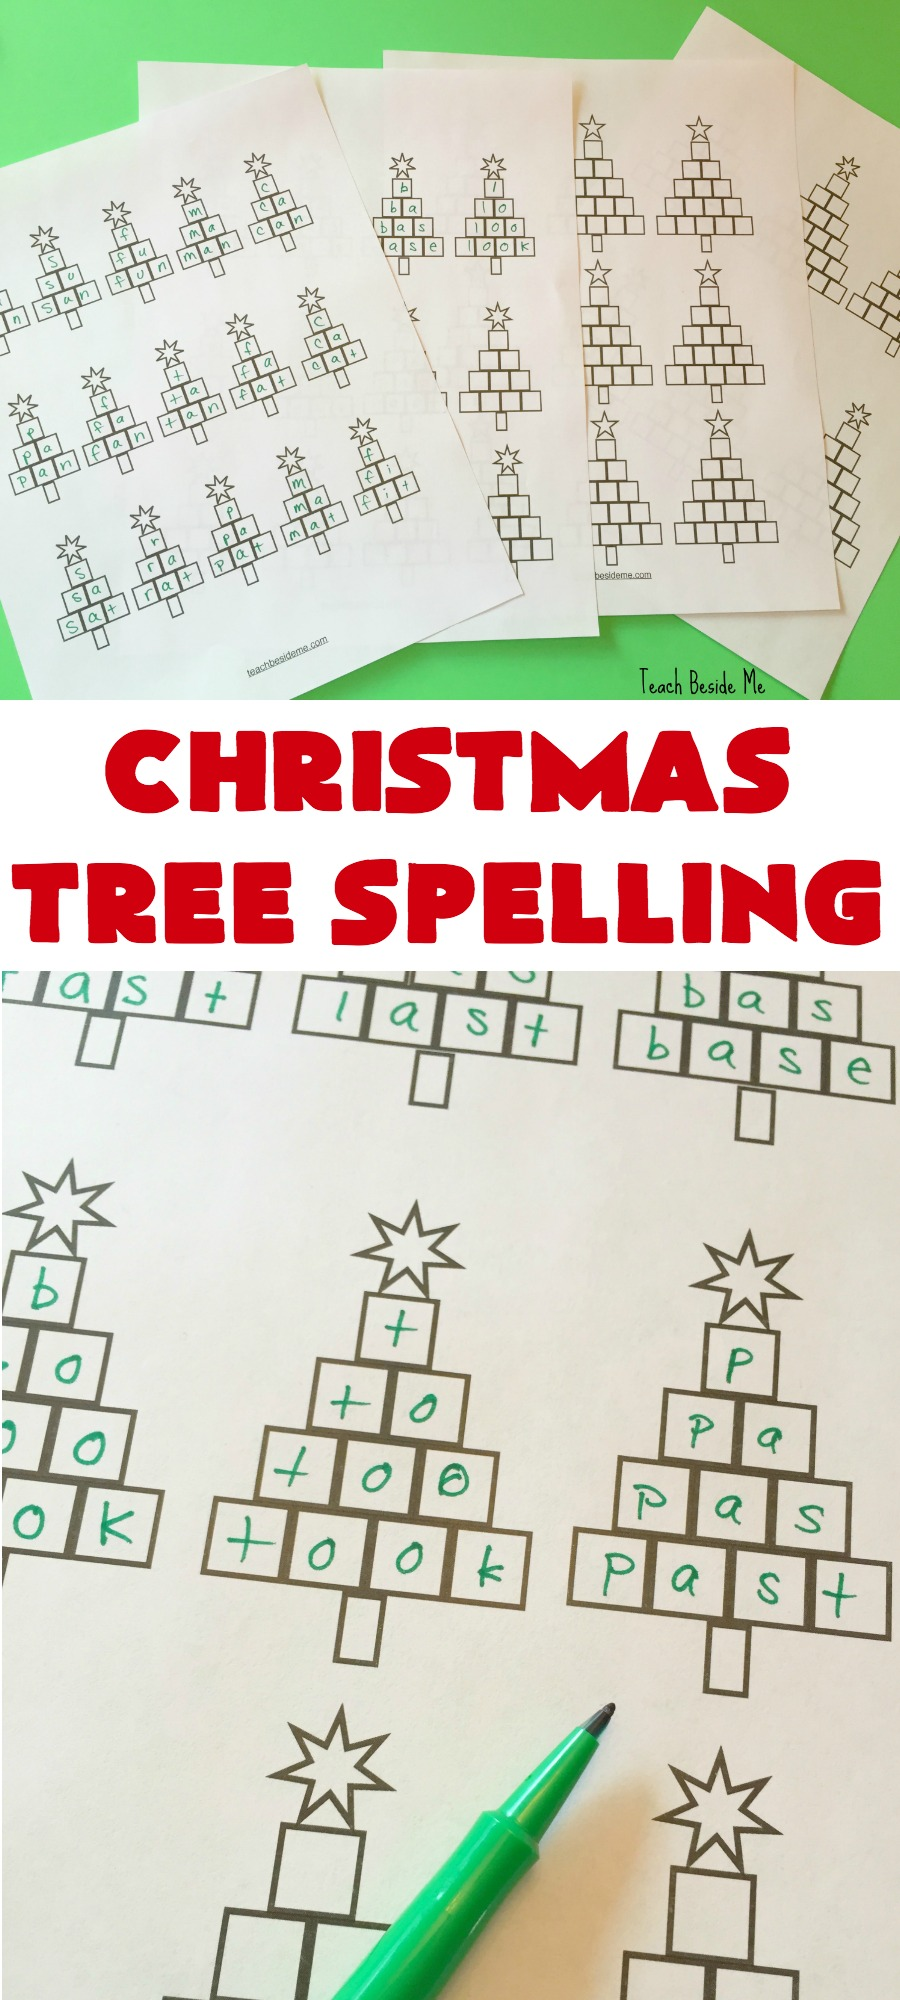 Christmas tree spelling worksheets - Teach Beside Me